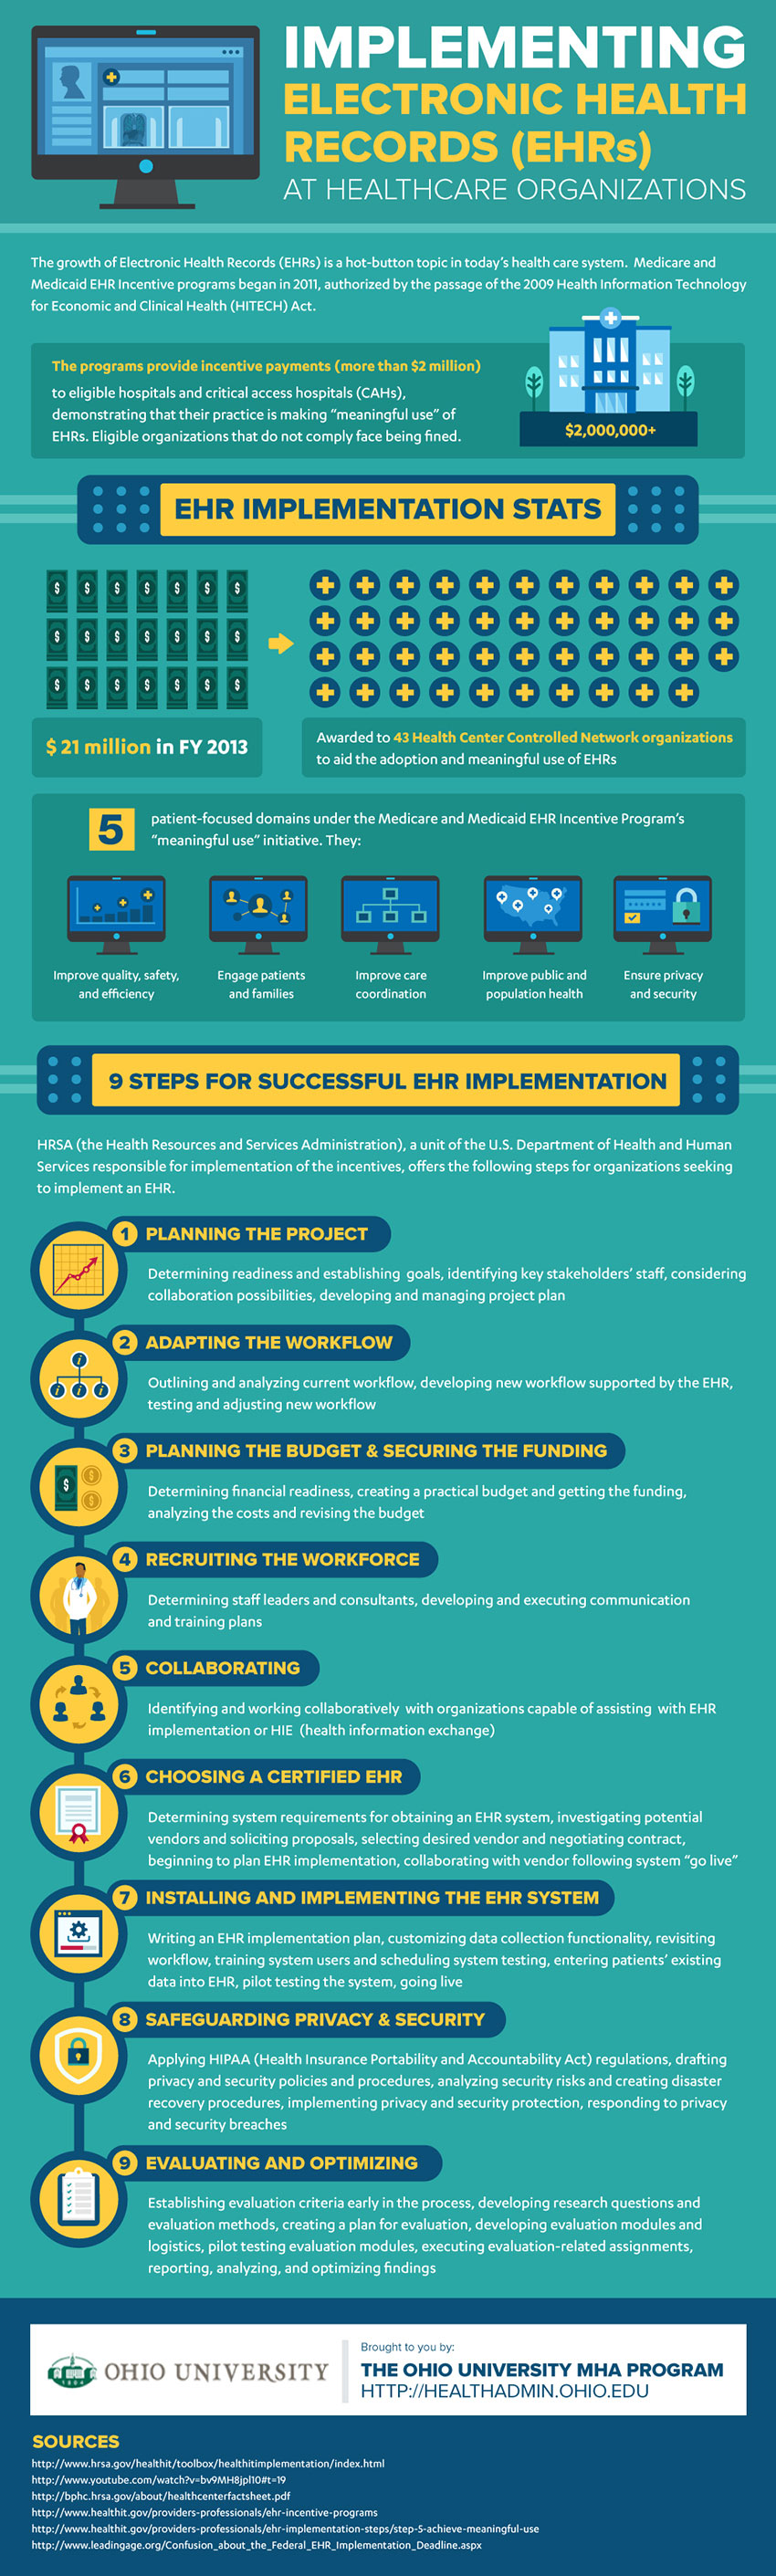 Implementing Electronic Health Records at Healthcare Organizations infographic